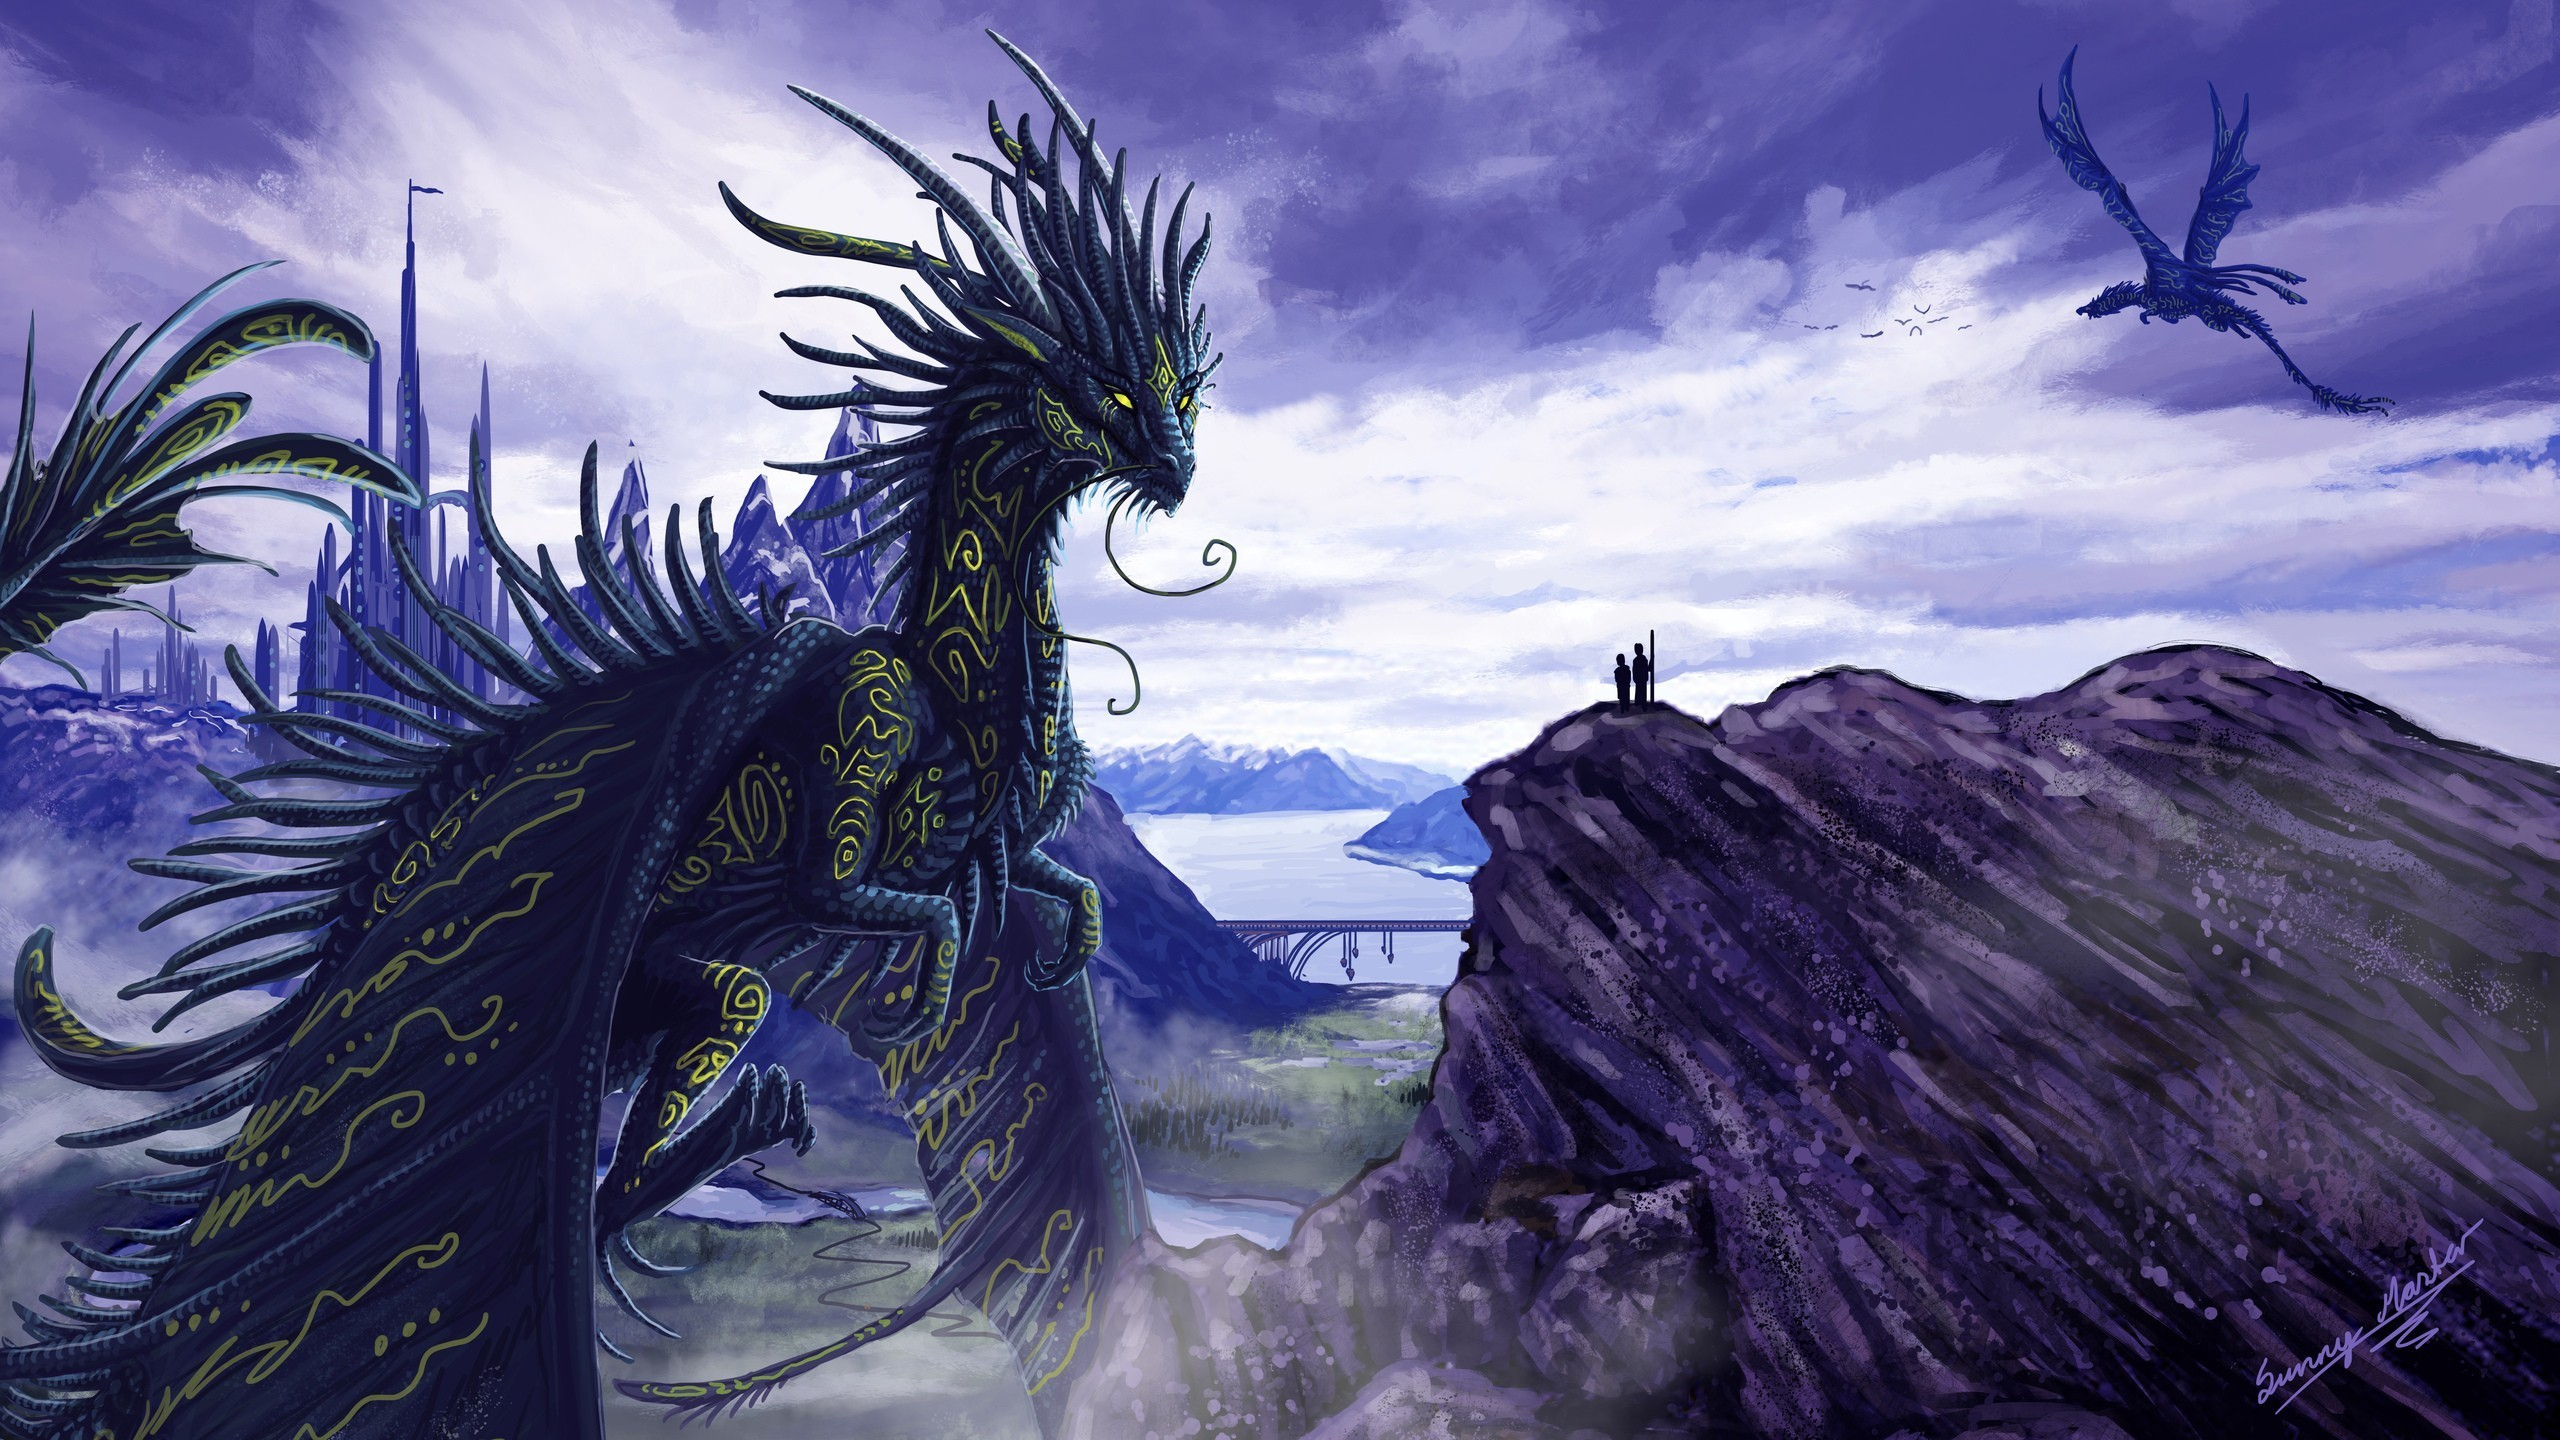 Blue dragon wallpaper wallpapertag - Dragon backgrounds 1920x1080 ...